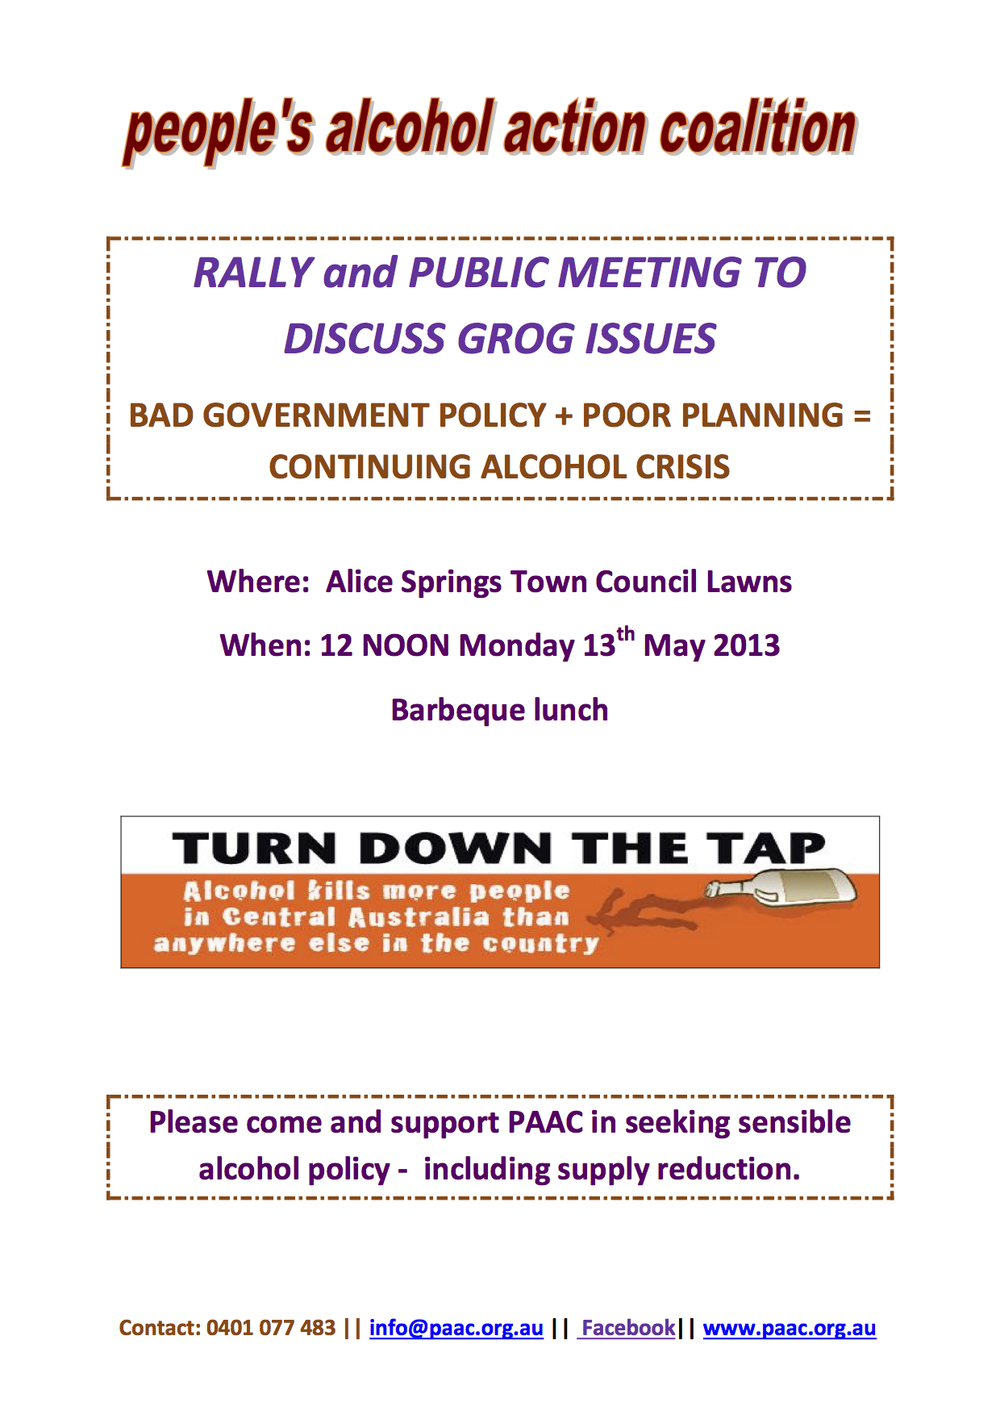 PAAC GROG CRISIS RALLY ALICE SPRINGS 13TH MAY FLYER 5.5.13.jpg